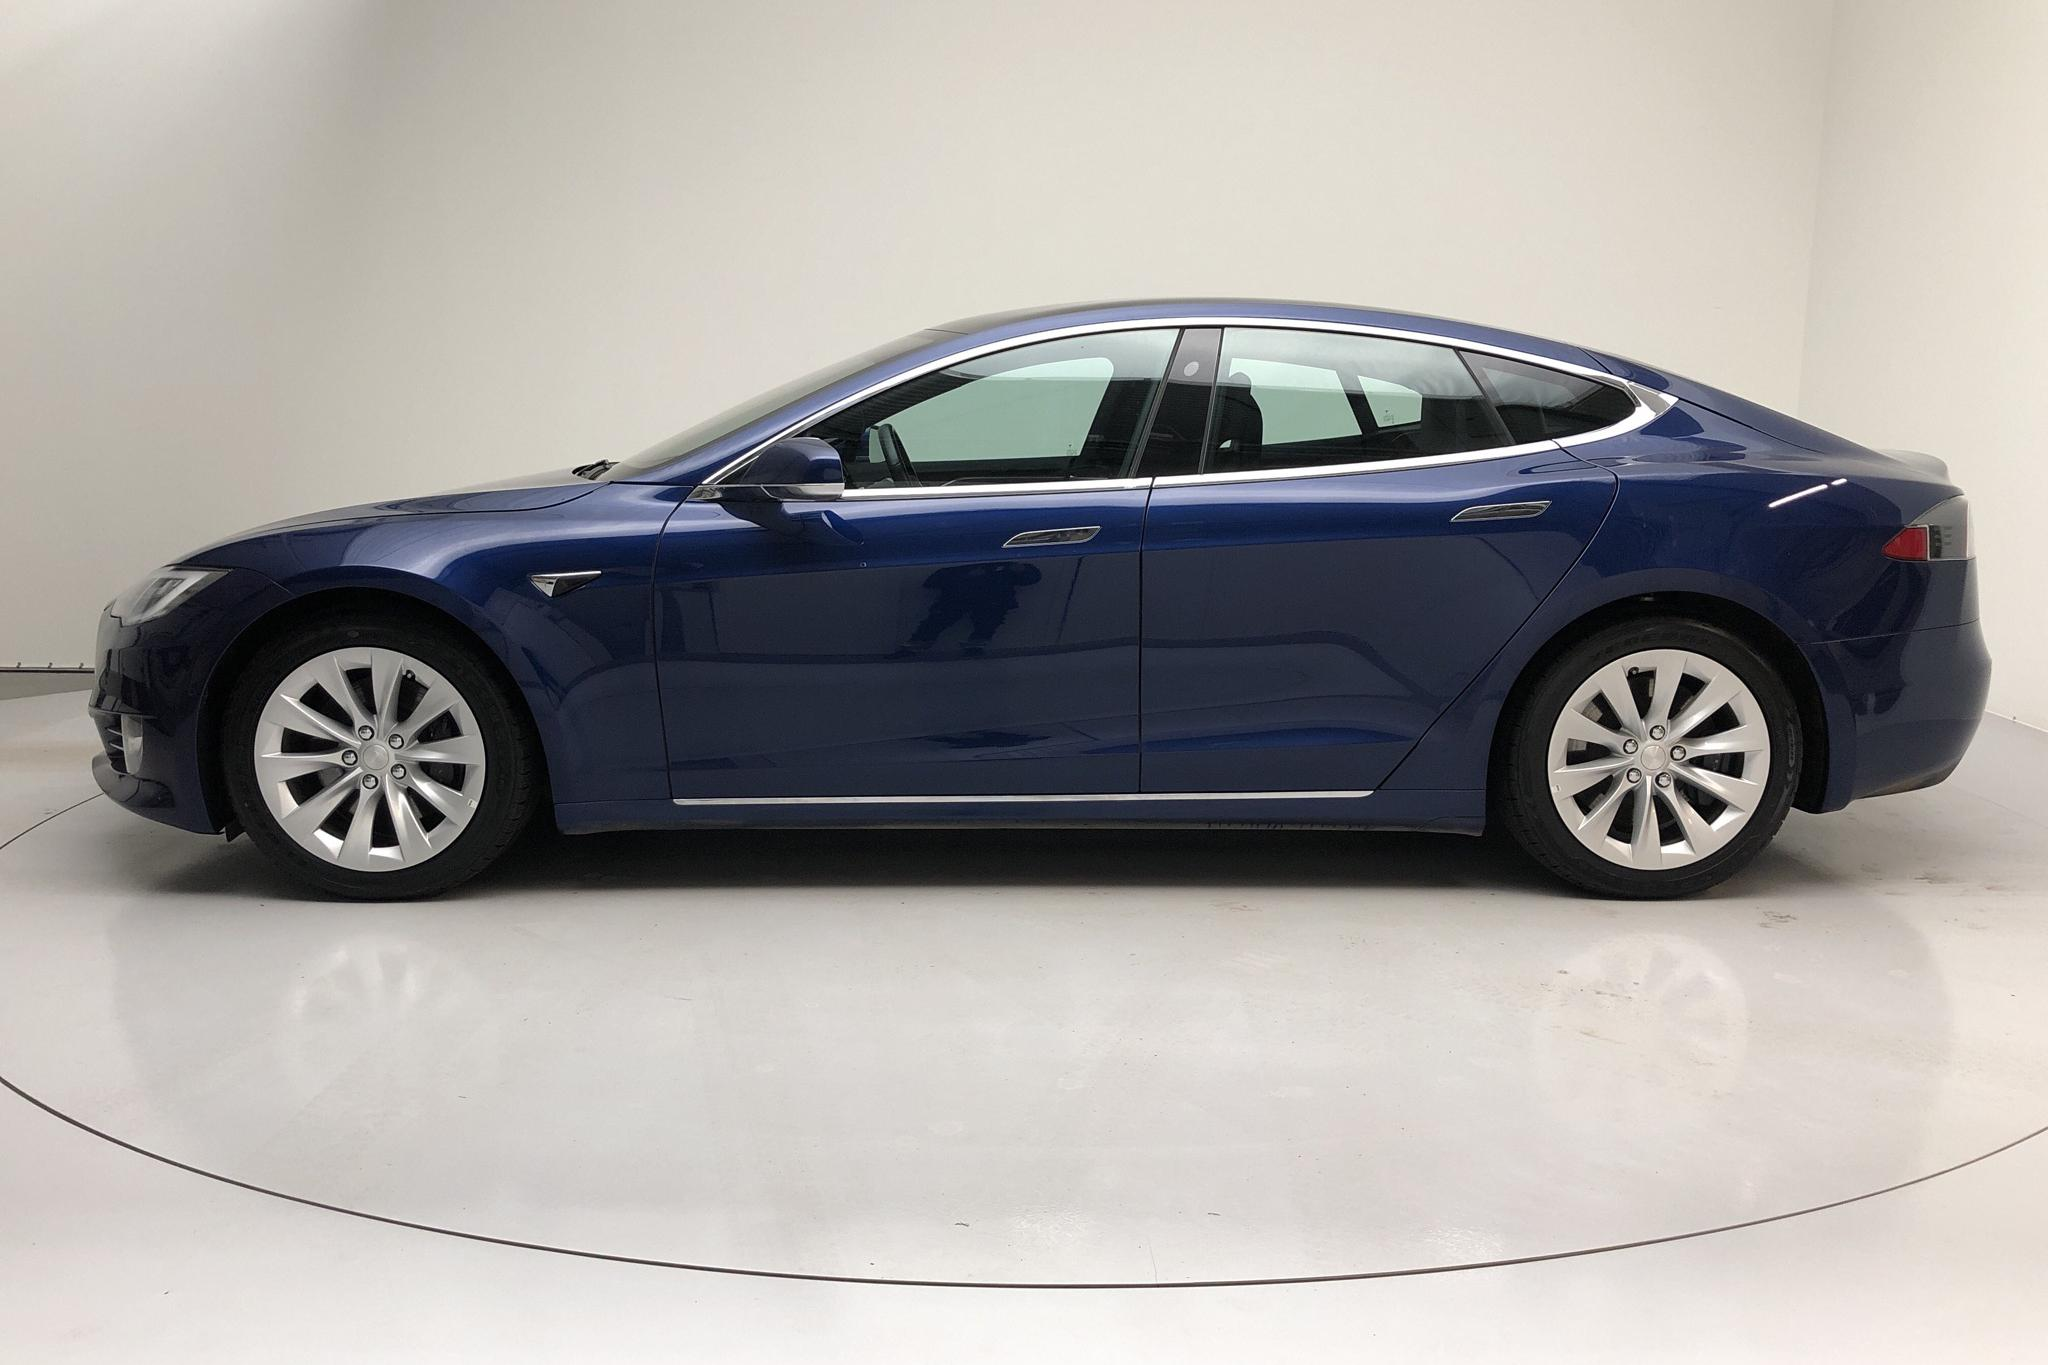 Tesla Model S 75D (525hk) - 61 340 km - Automatic - blue - 2018